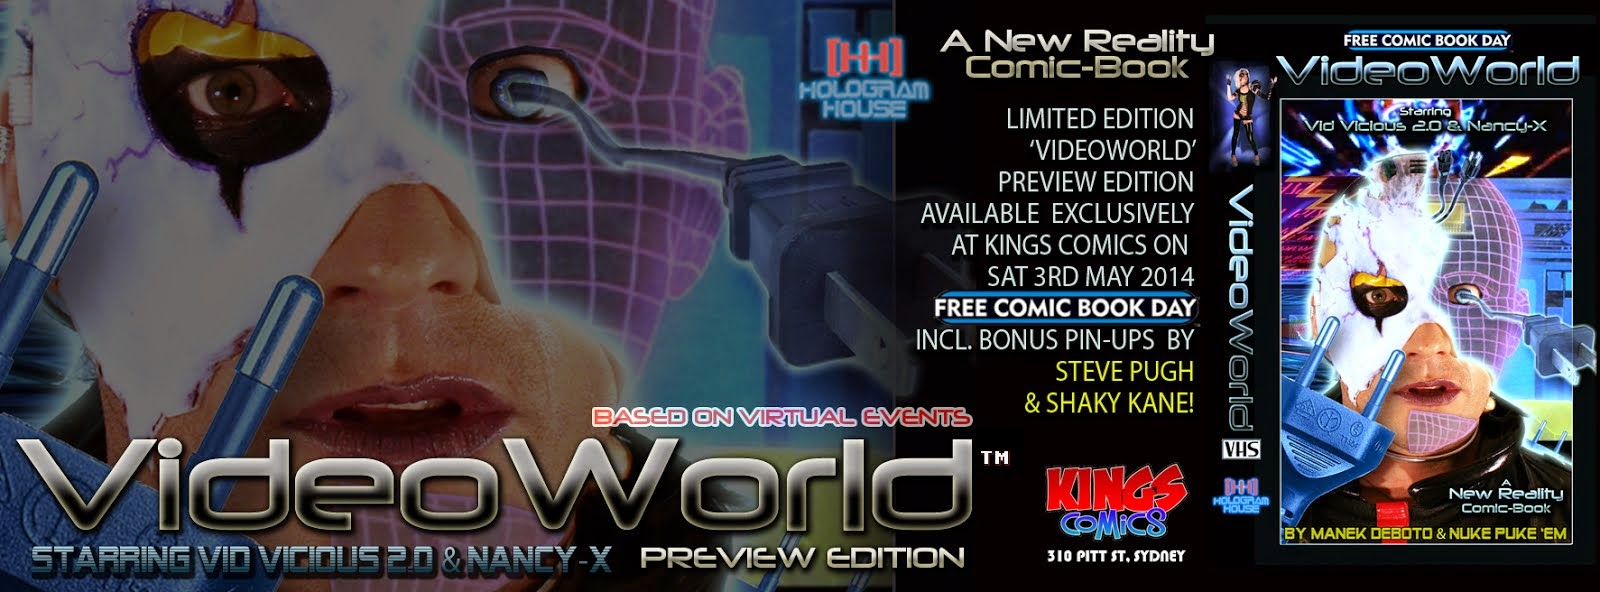 VideoWorld - Coming Soon from Hologram House